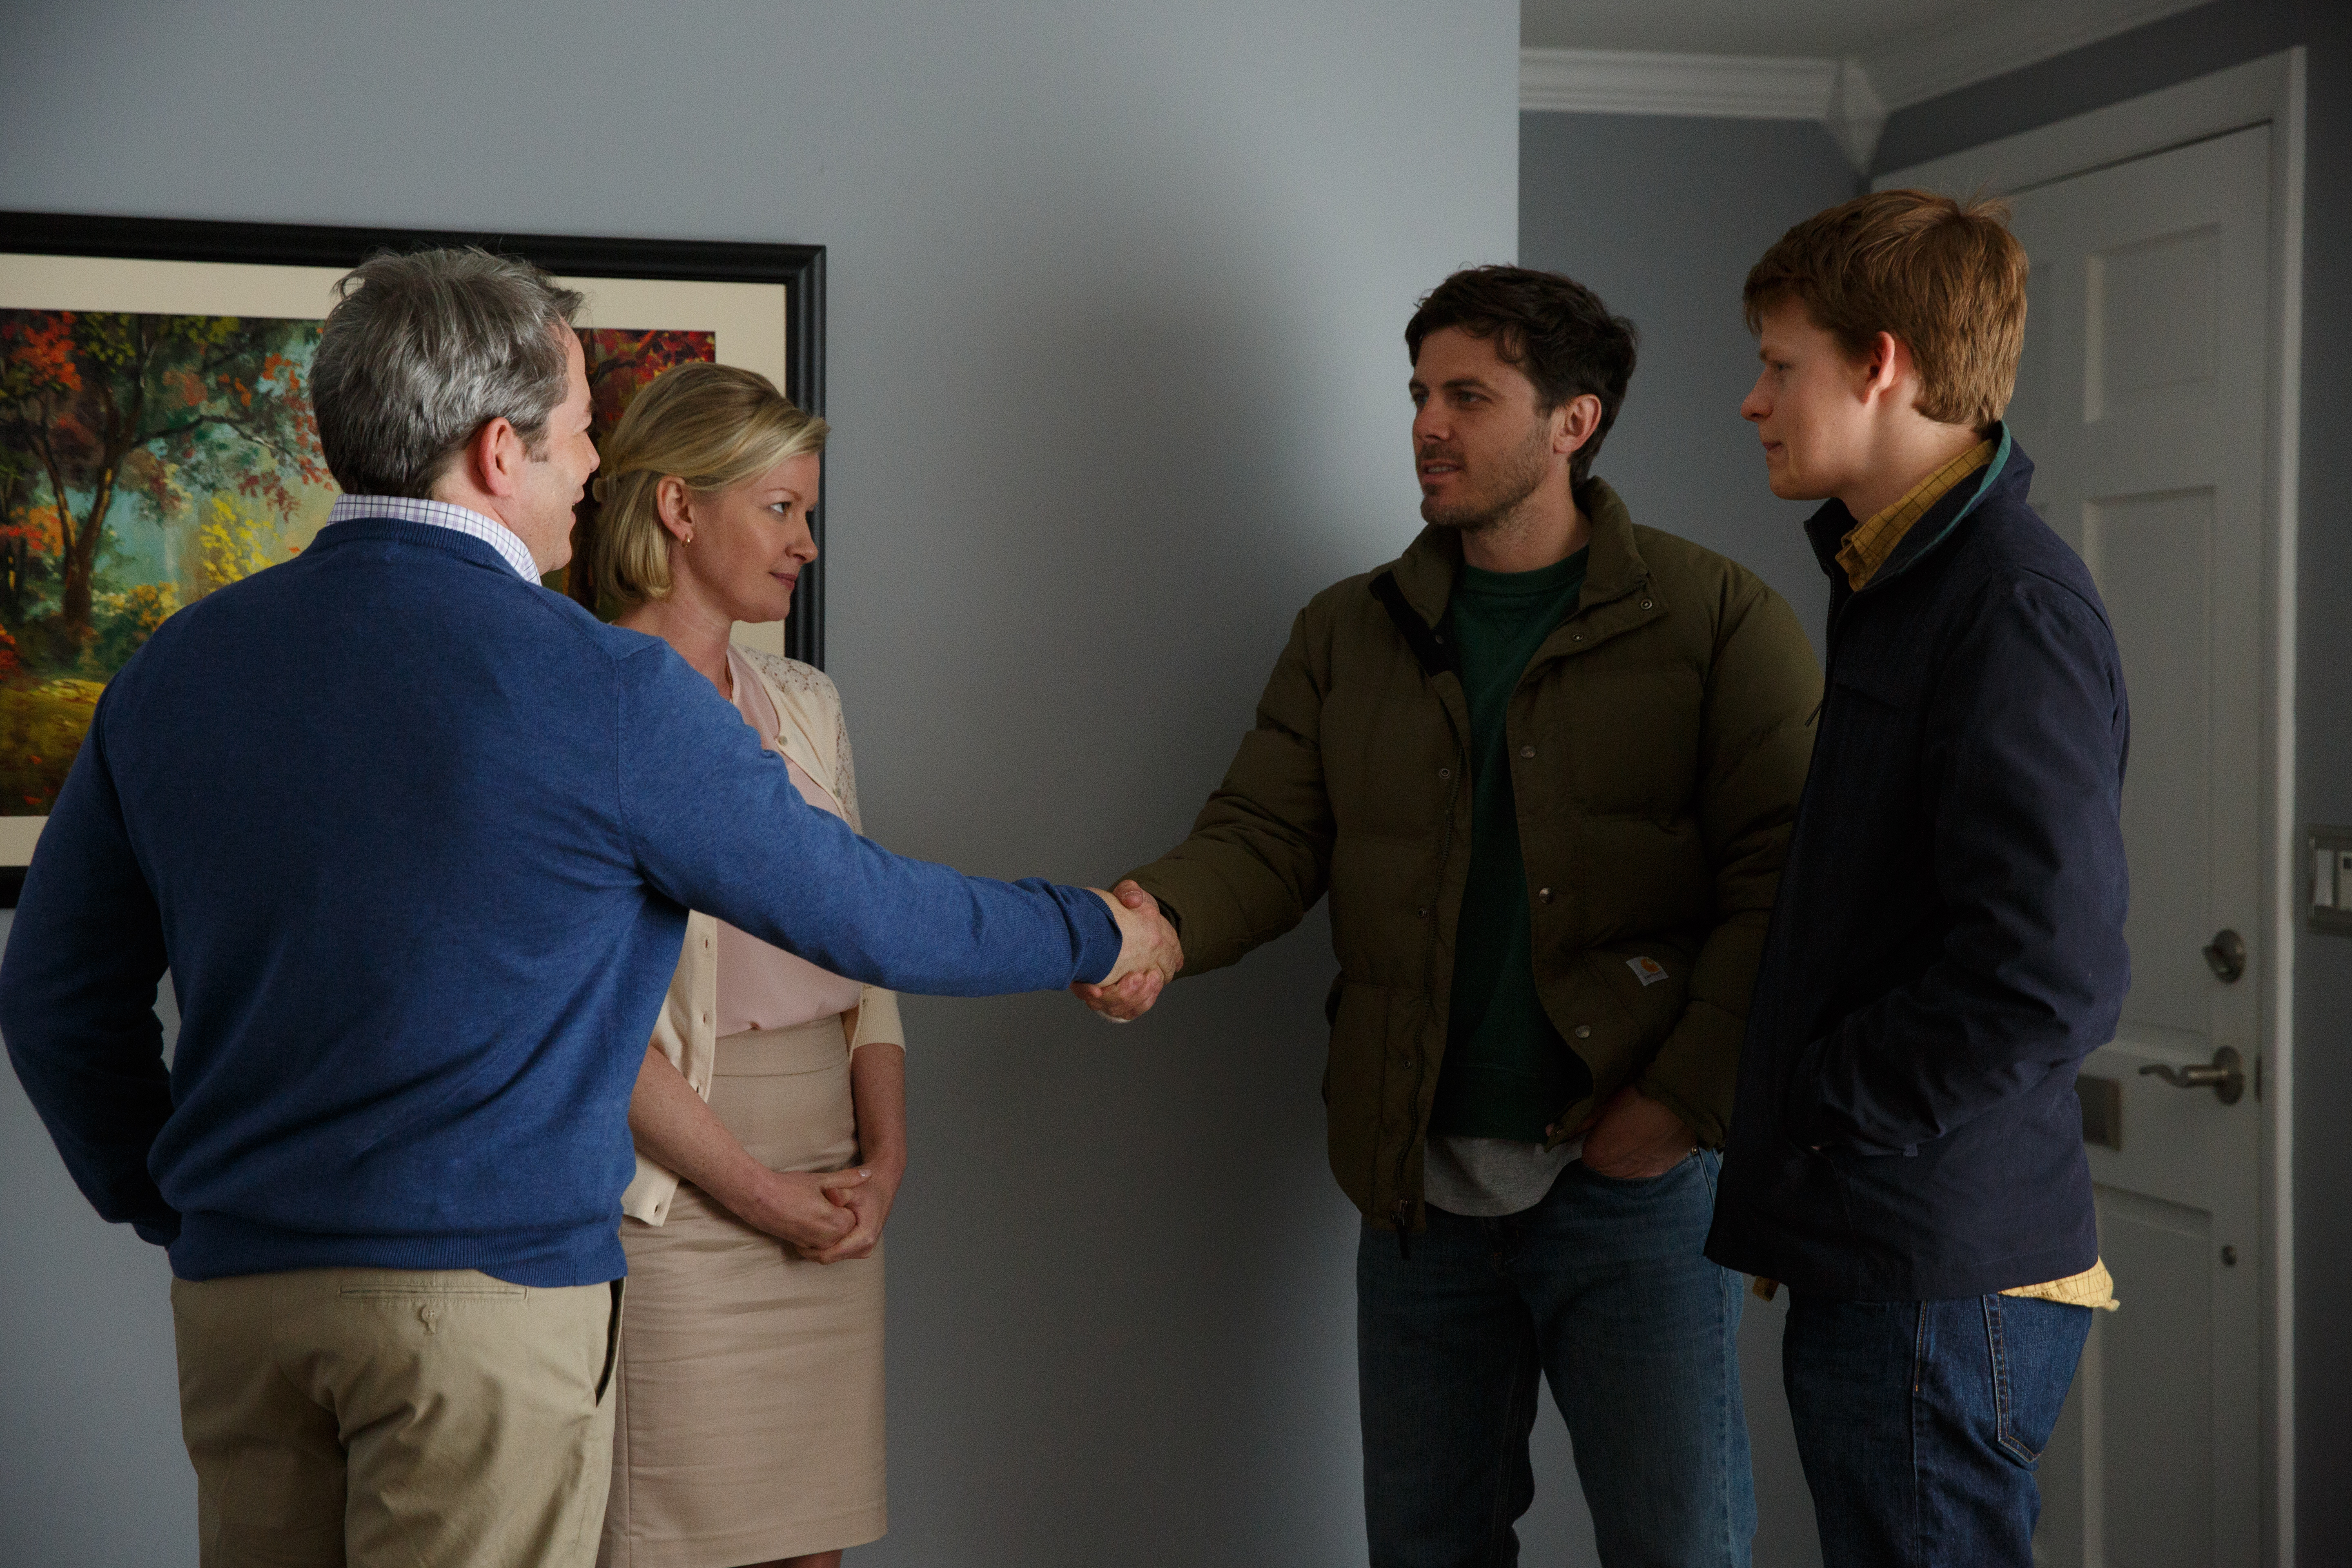 Matthew Broderick, Casey Affleck, Gretchen Mol, and Lucas Hedges in Manchester by the Sea (2016)